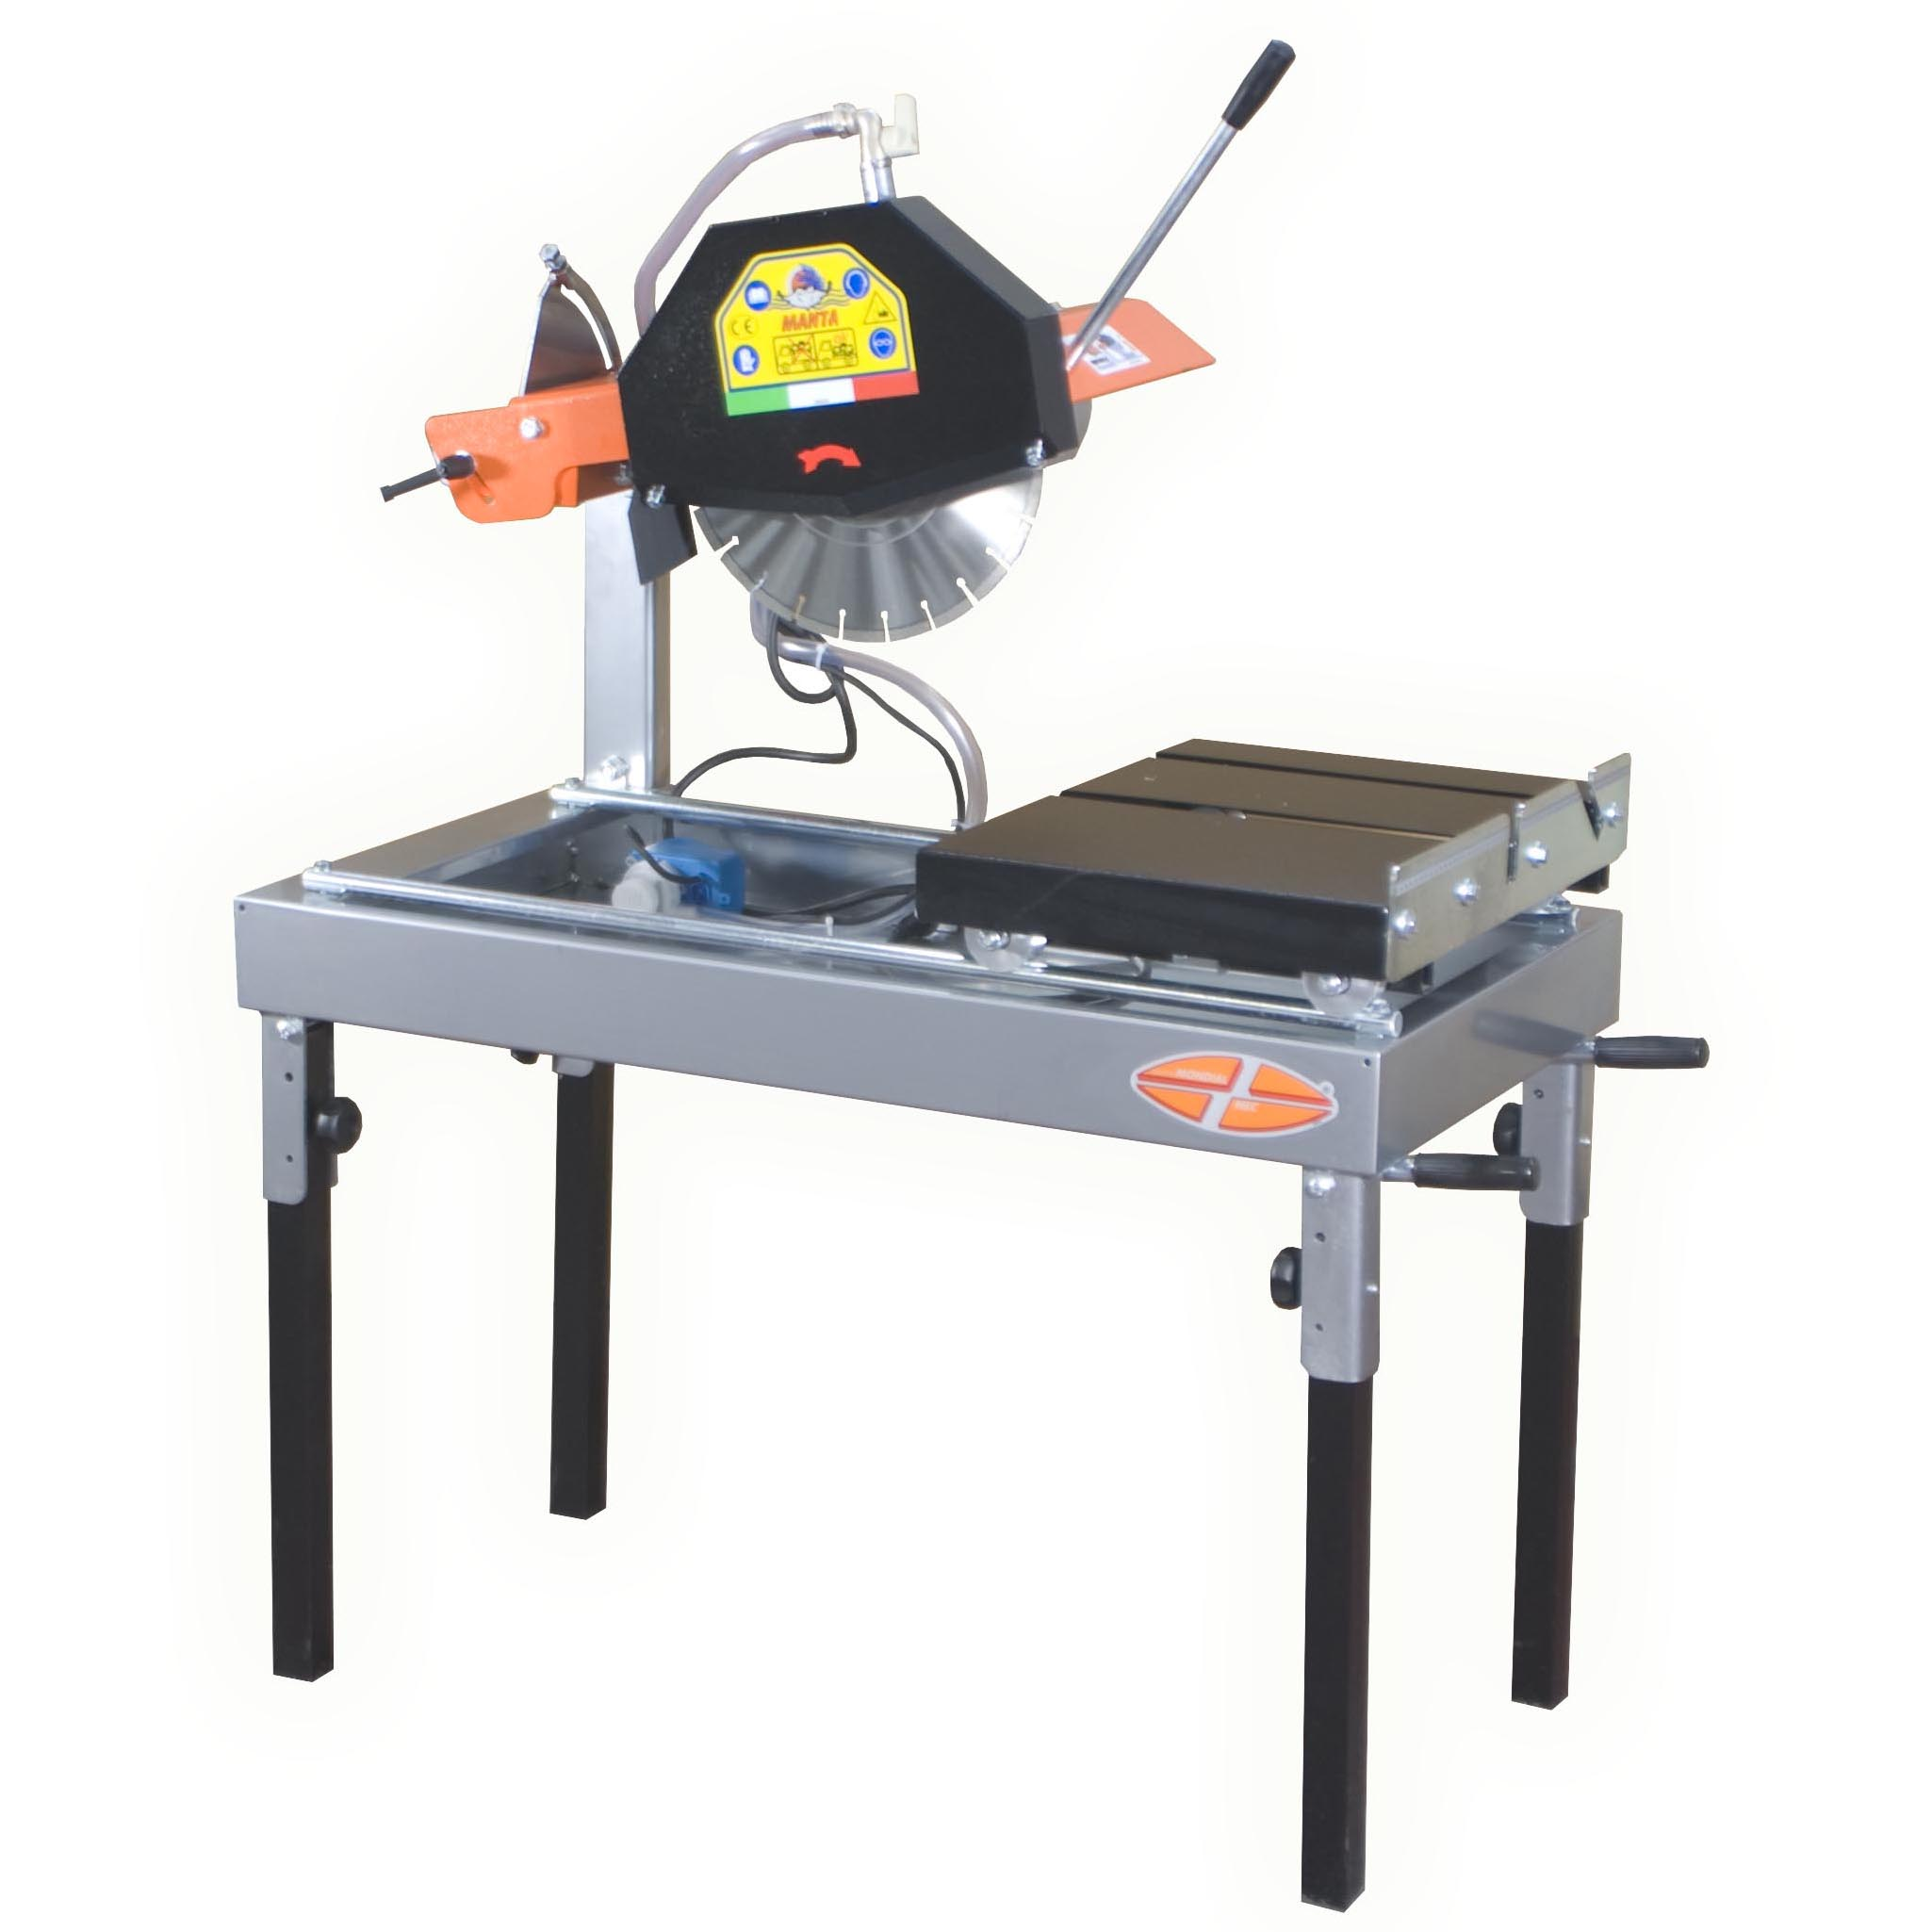 Mondial Manta Stone Saw, www.patsharkeyengineering.co.uk